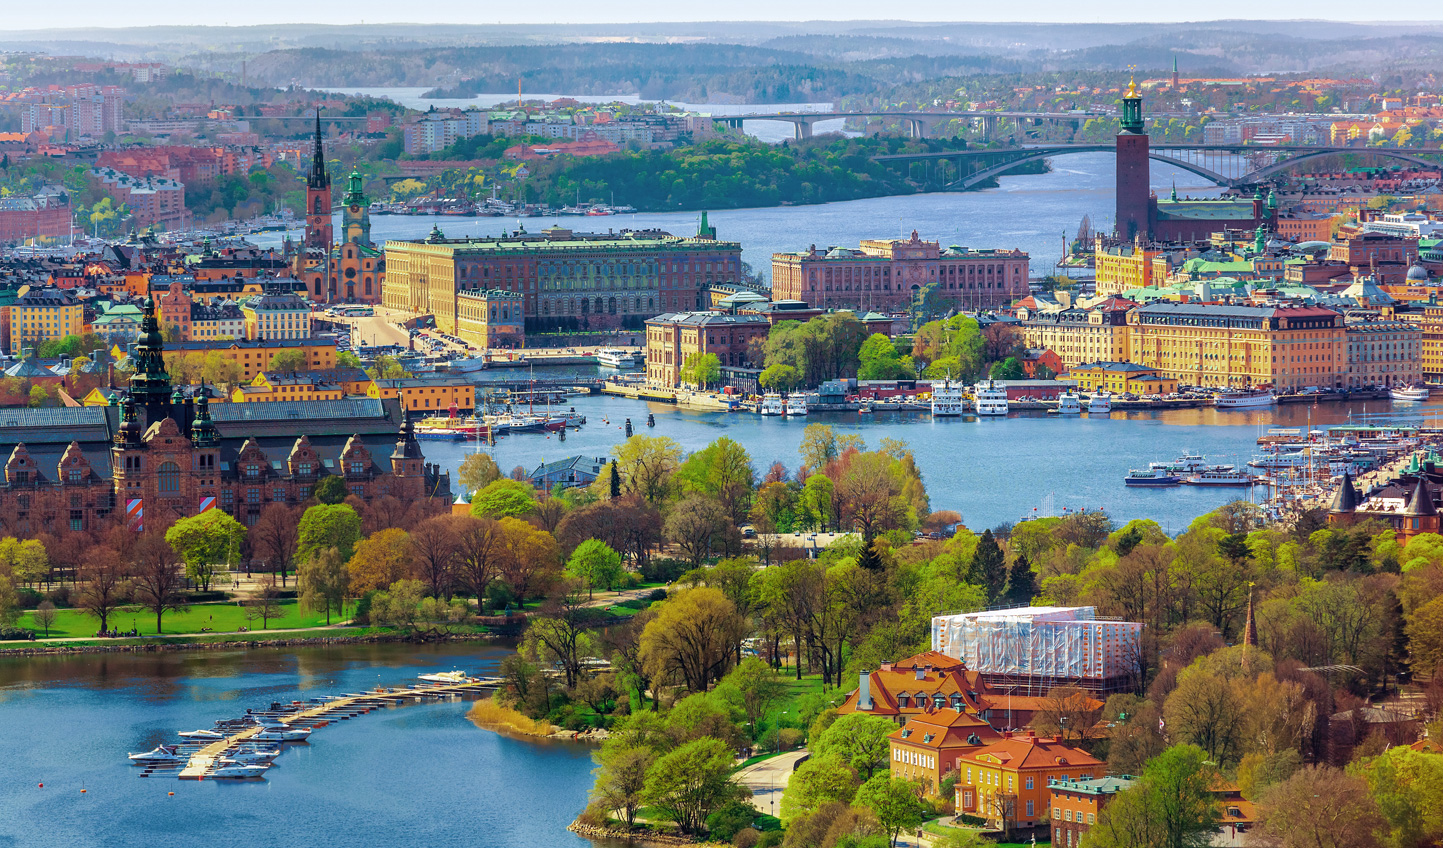 You are sure to fall in love with Scandinavia after this trip